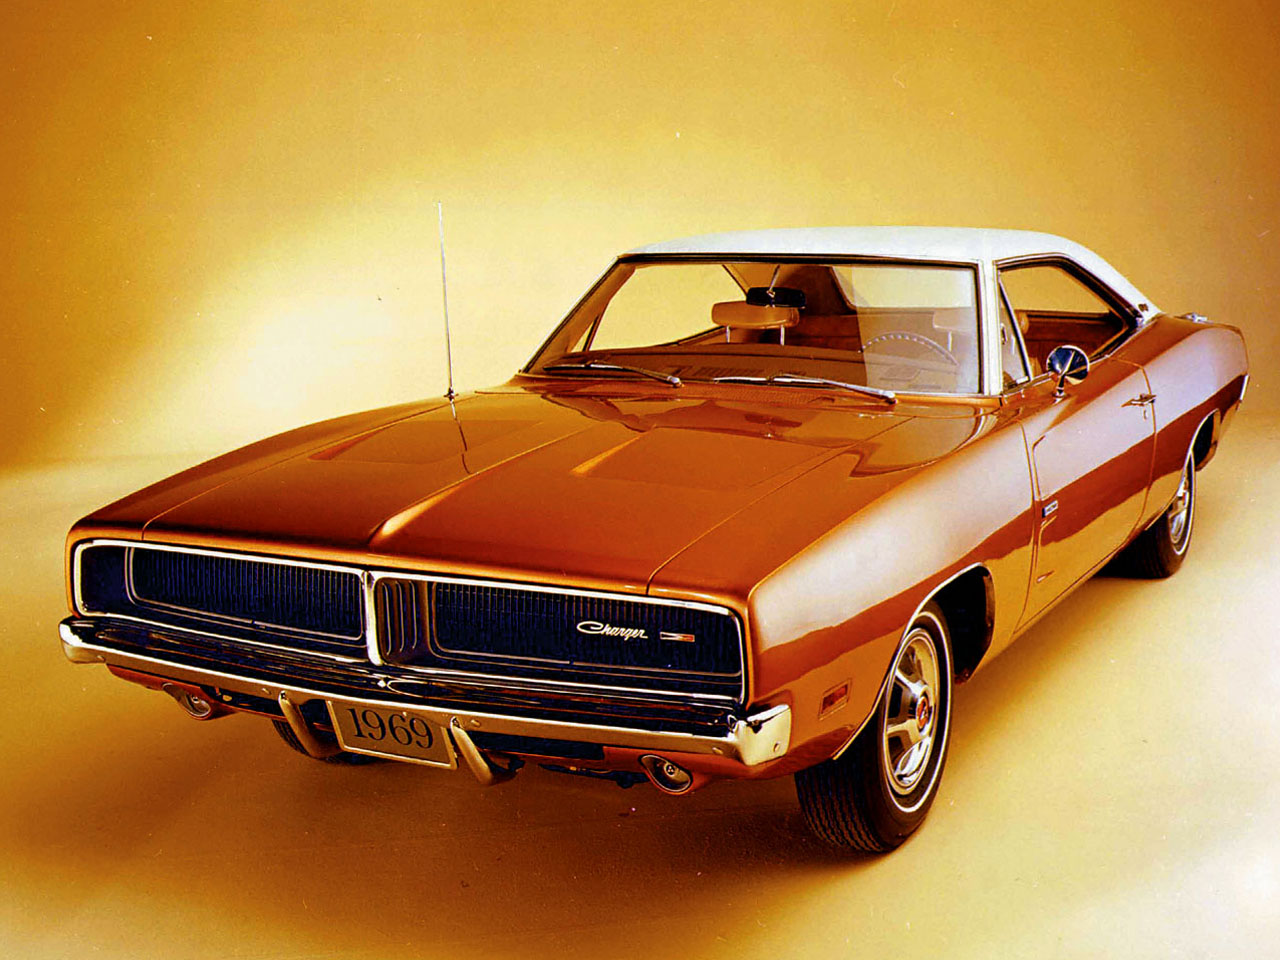 1969 dodge charger headlights wallpaper - photo #10